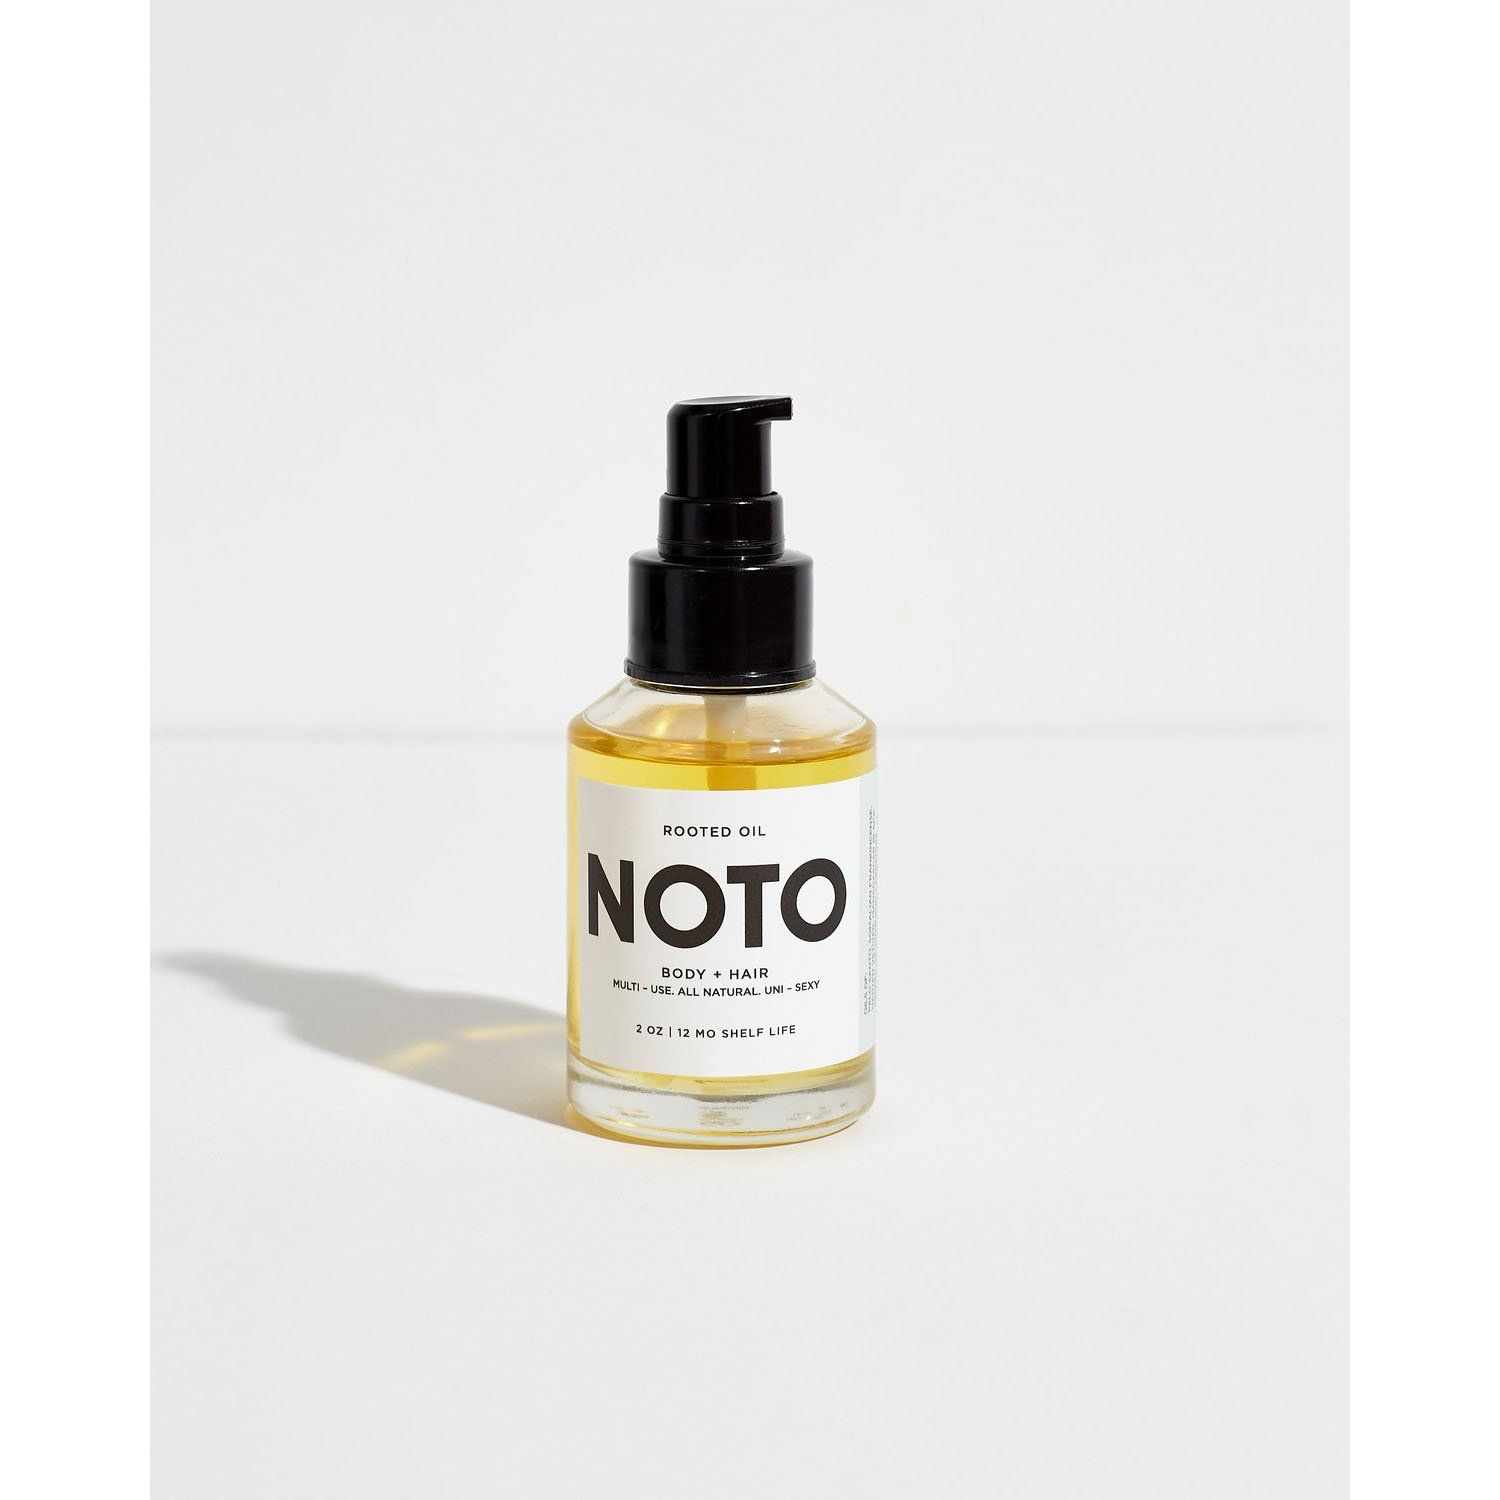 Rooted Oil Körperöle NOTO Botanics 60ml - Genuine Selection